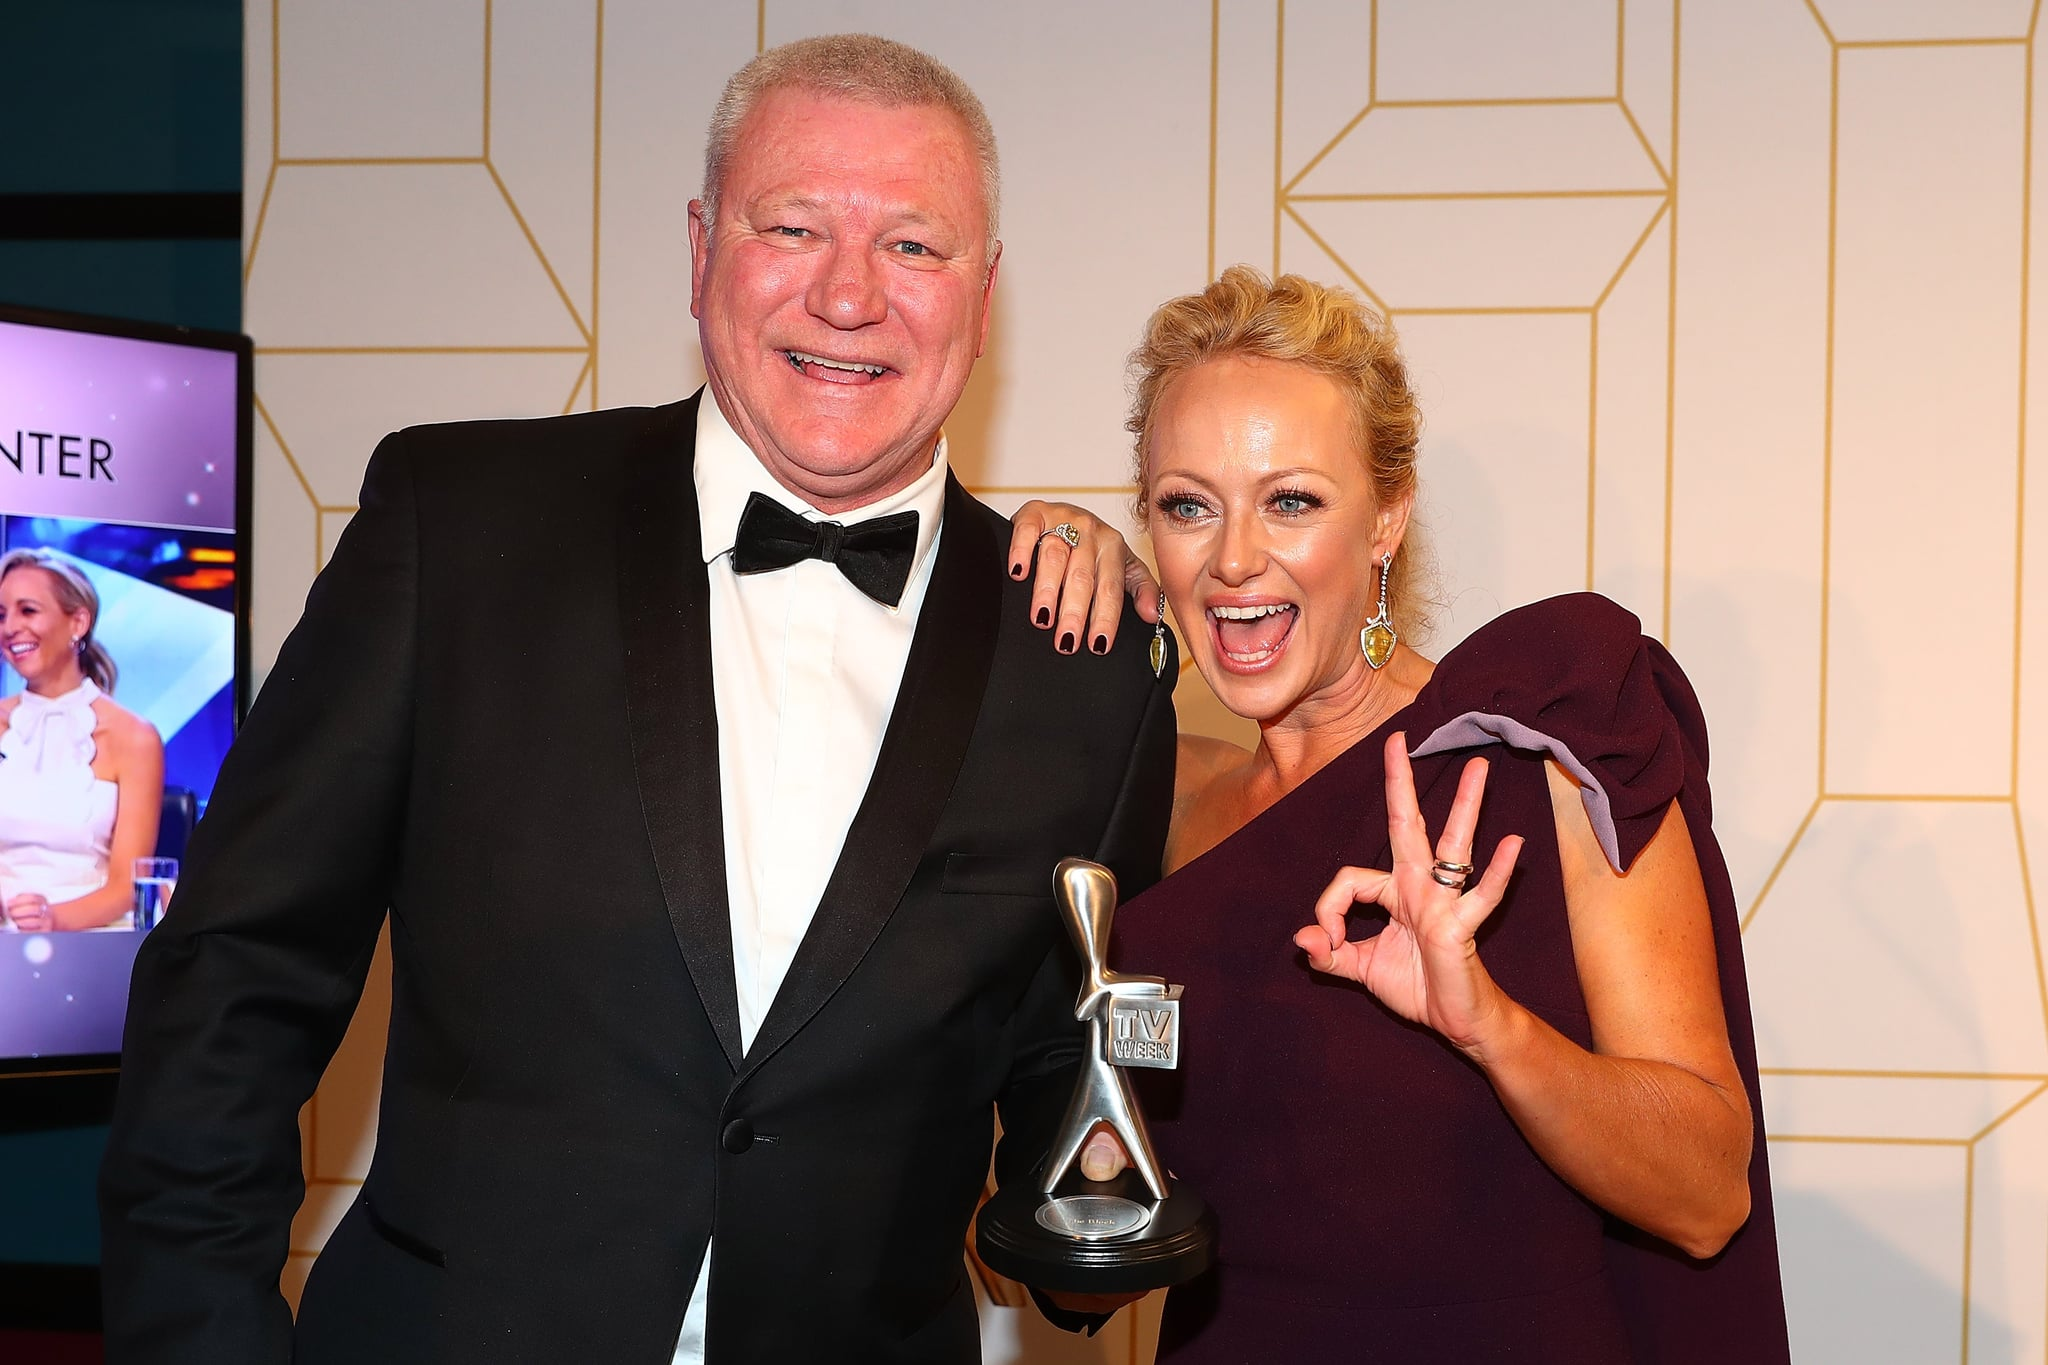 GOLD COAST, AUSTRALIA - JULY 01:  Scott Cam and Shelley Craft from the Block pose with the award for most popular reality at the 60th Annual Logie Awards at The Star Gold Coast on July 1, 2018 in Gold Coast, Australia.  (Photo by Chris Hyde/Getty Images)